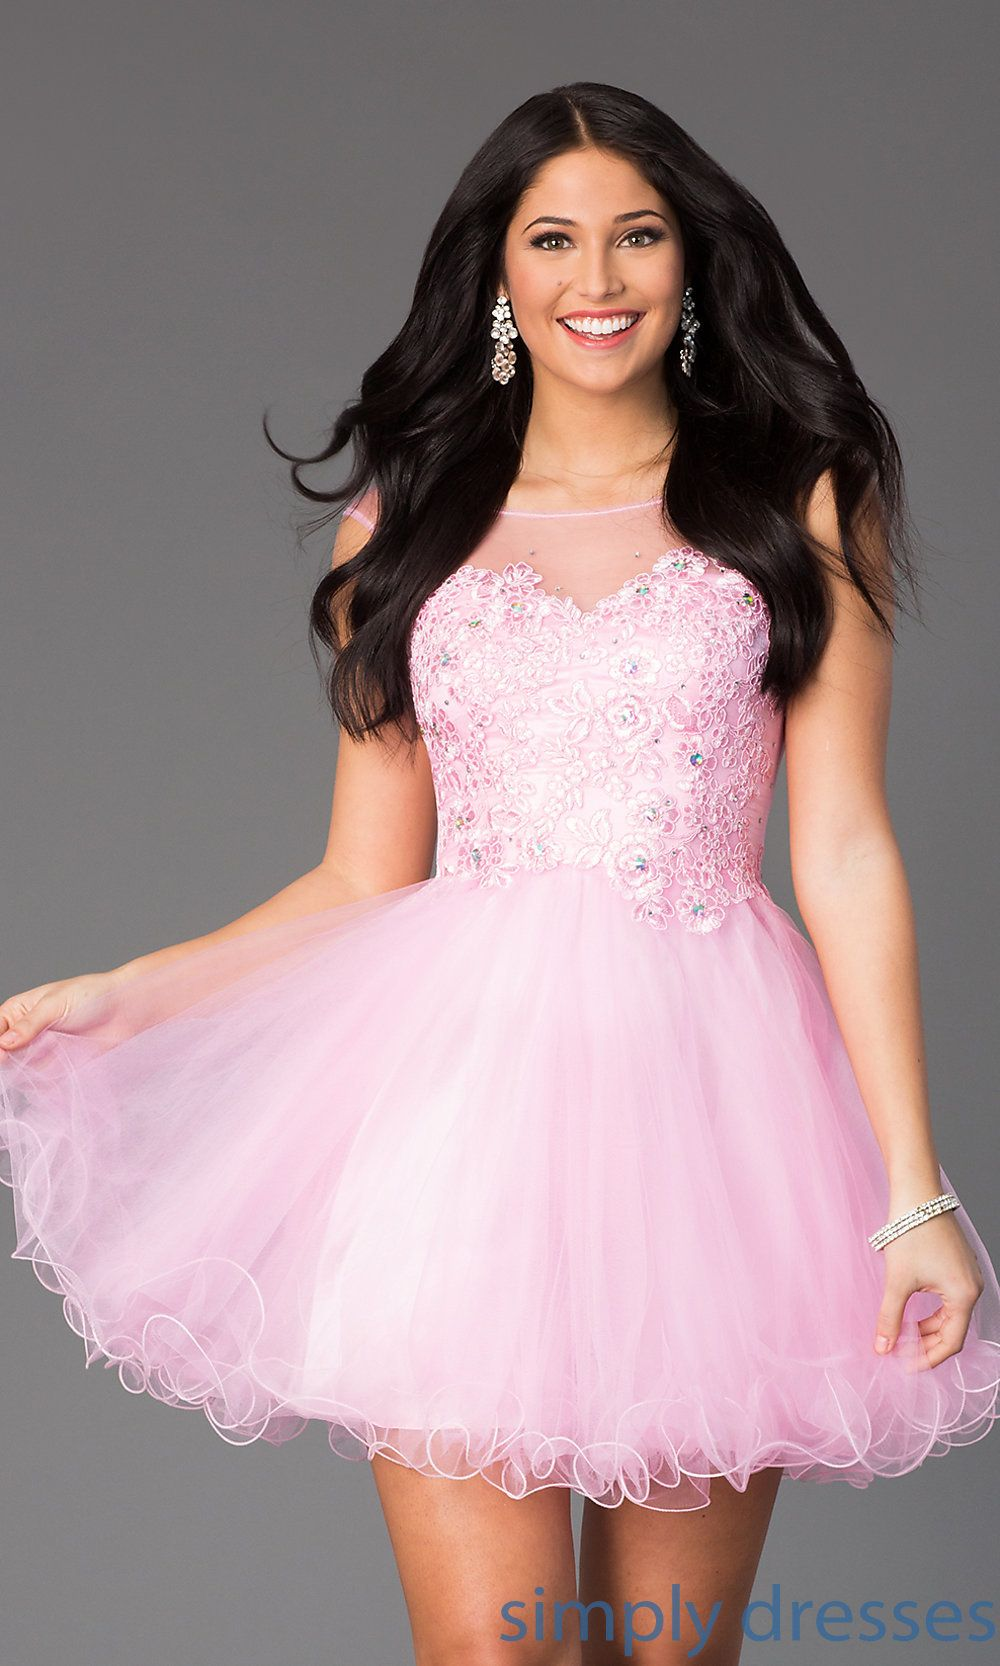 Dq sleeveless short prom dress with embellished lace short